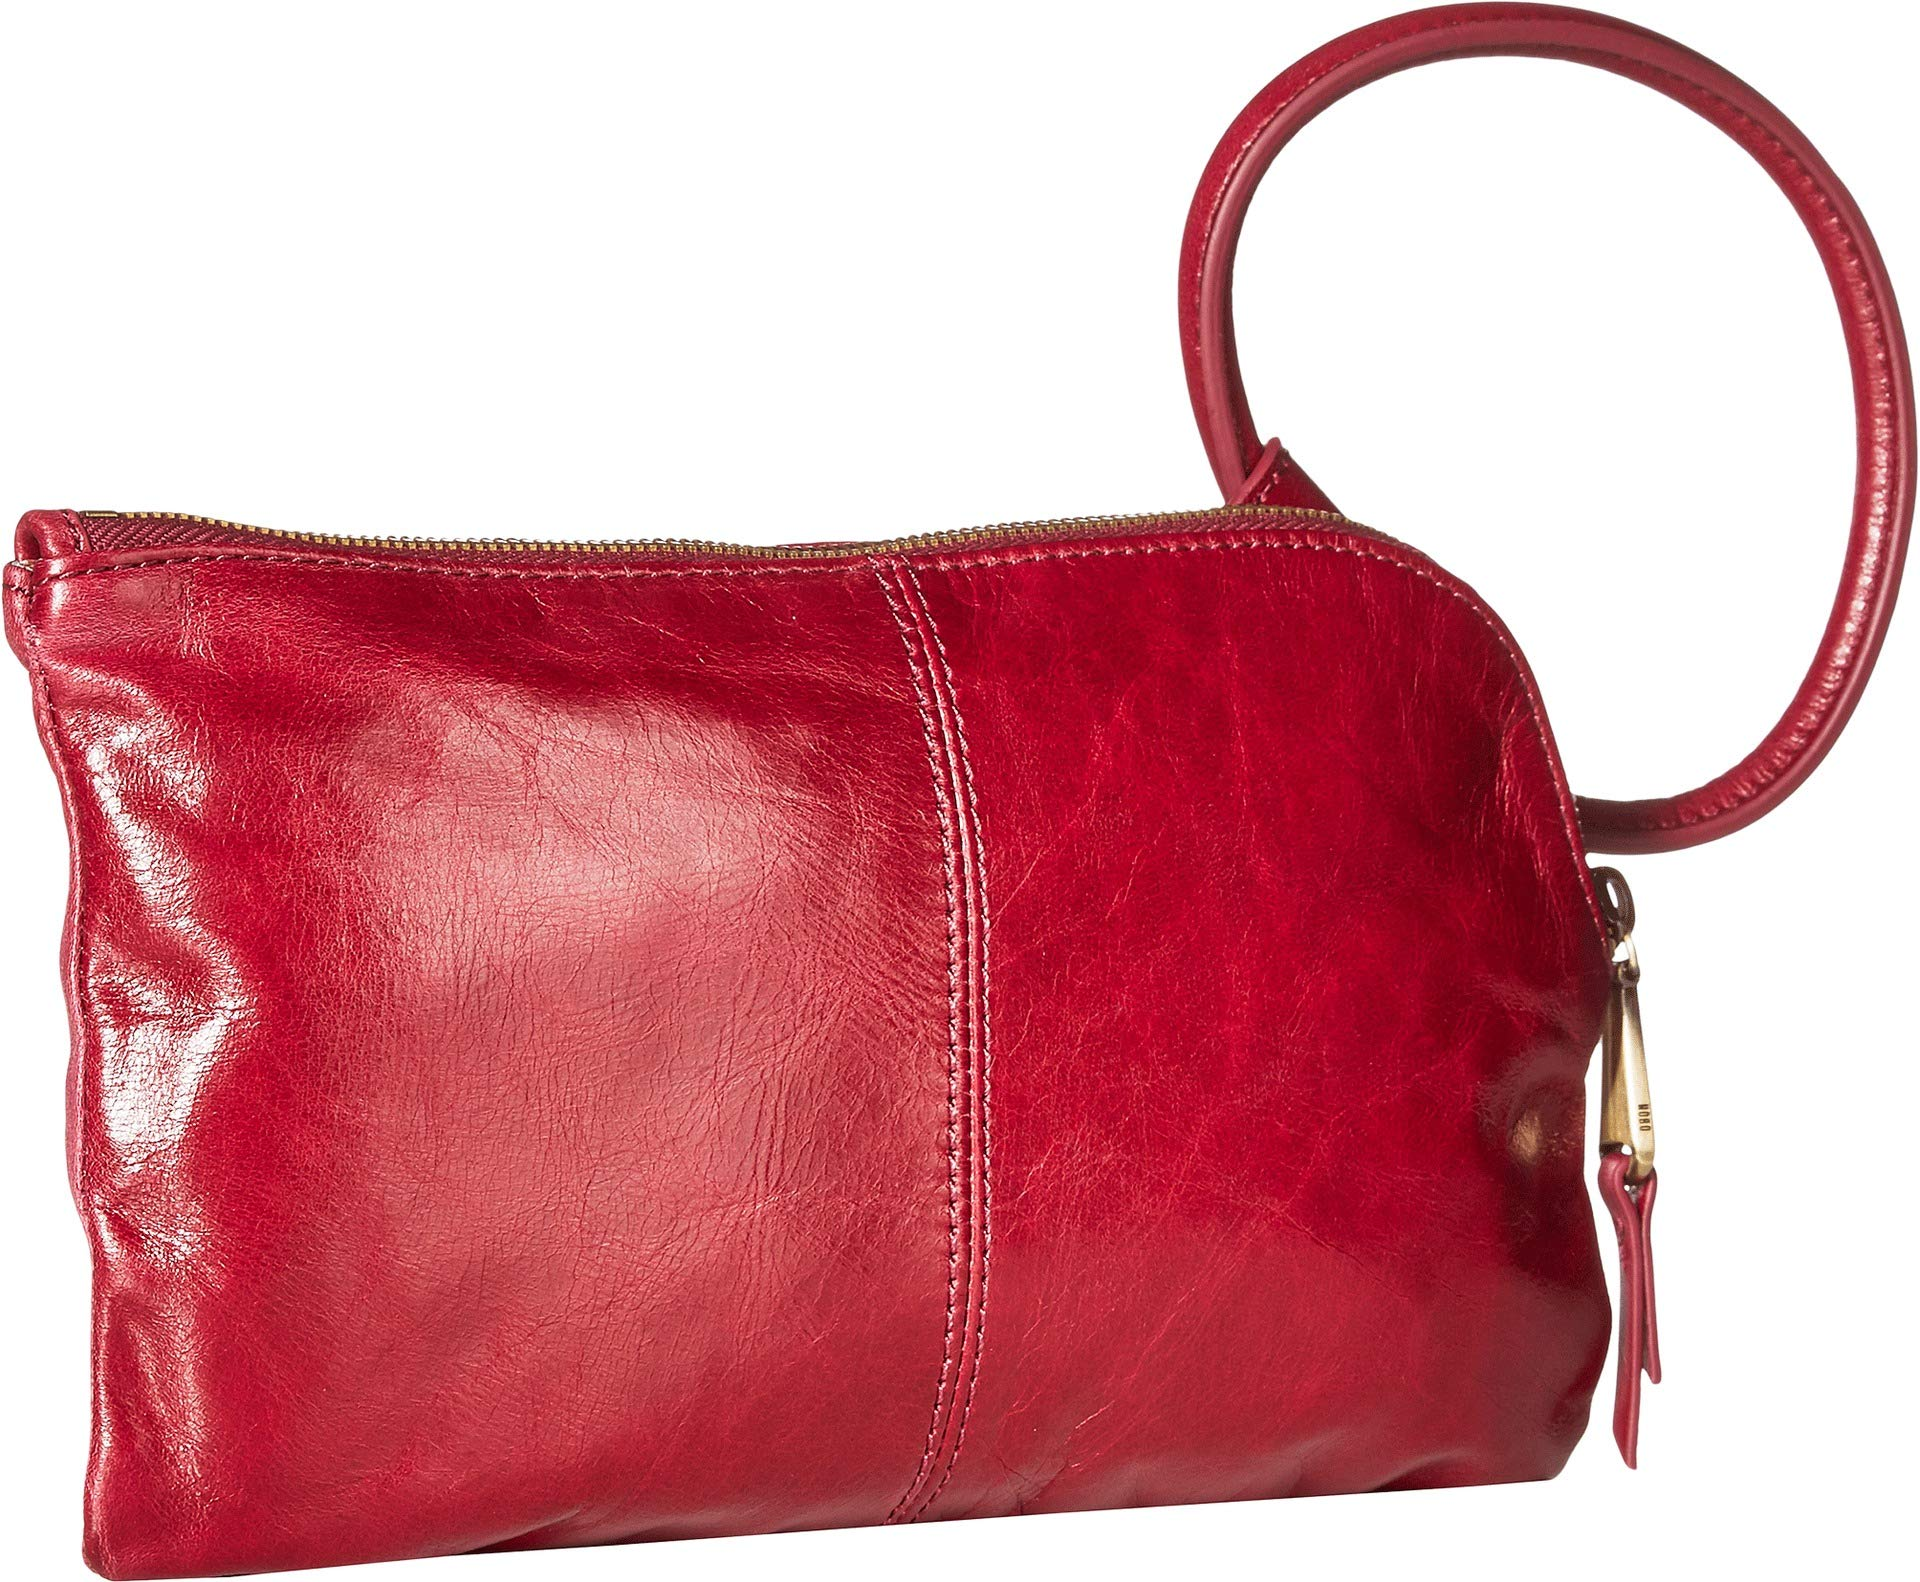 Hobo Women's Sable Ruby 1 One Size by HOBO (Image #2)